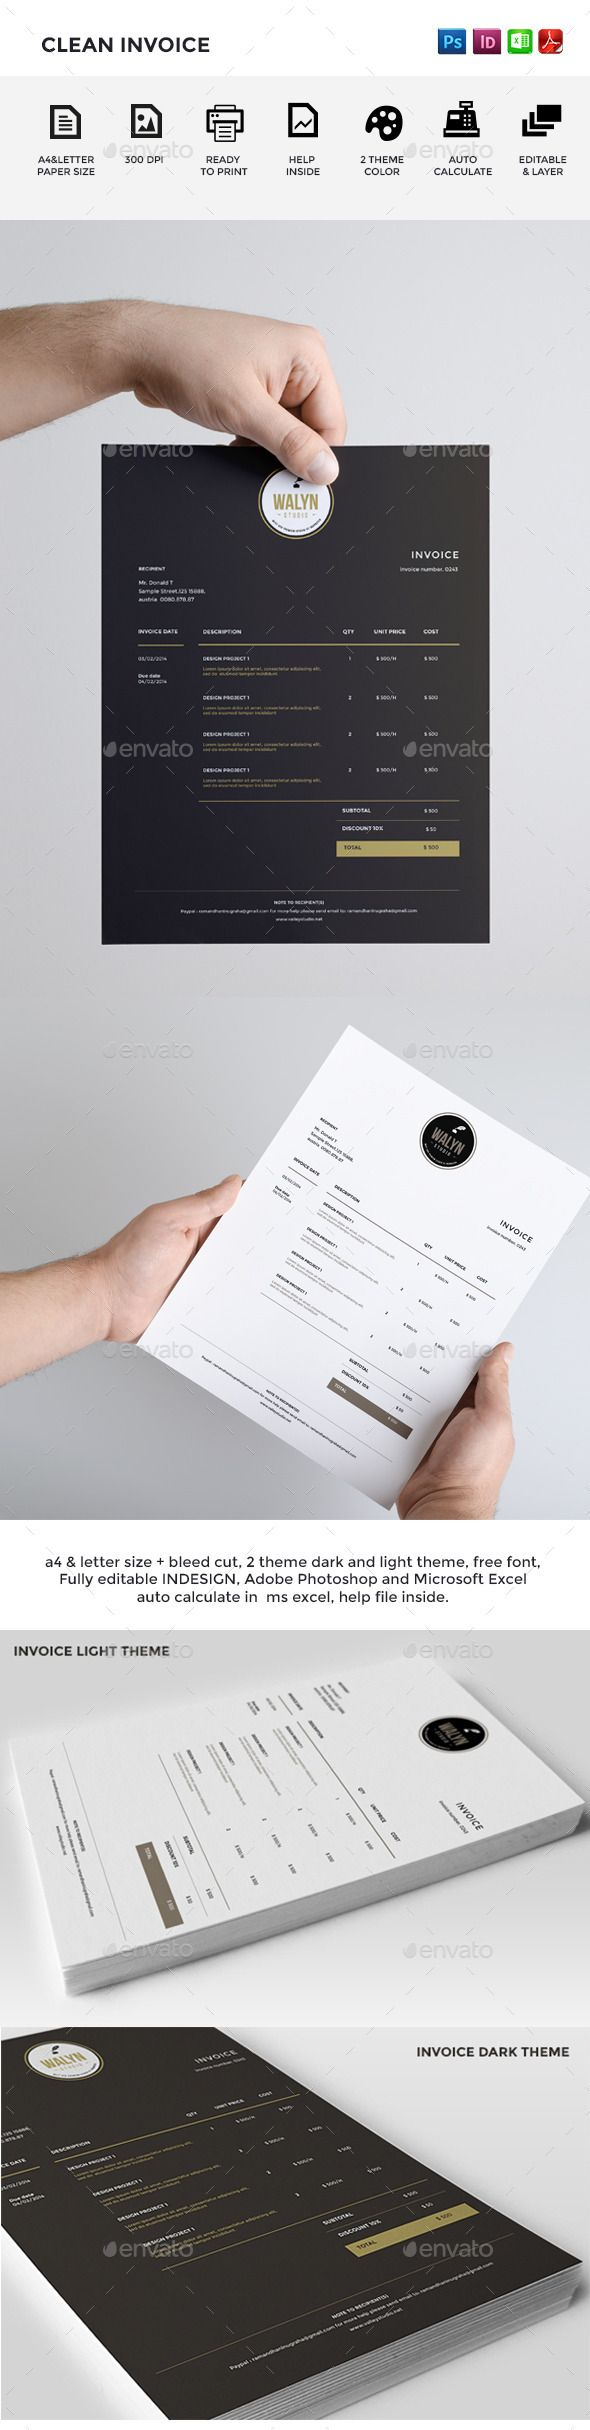 Clean Invoice Template | #invoice #invoicetemplate #invoicedesign | Download: http://graphicriver.net/item/clean-invoice/9054399?ref=ksioks